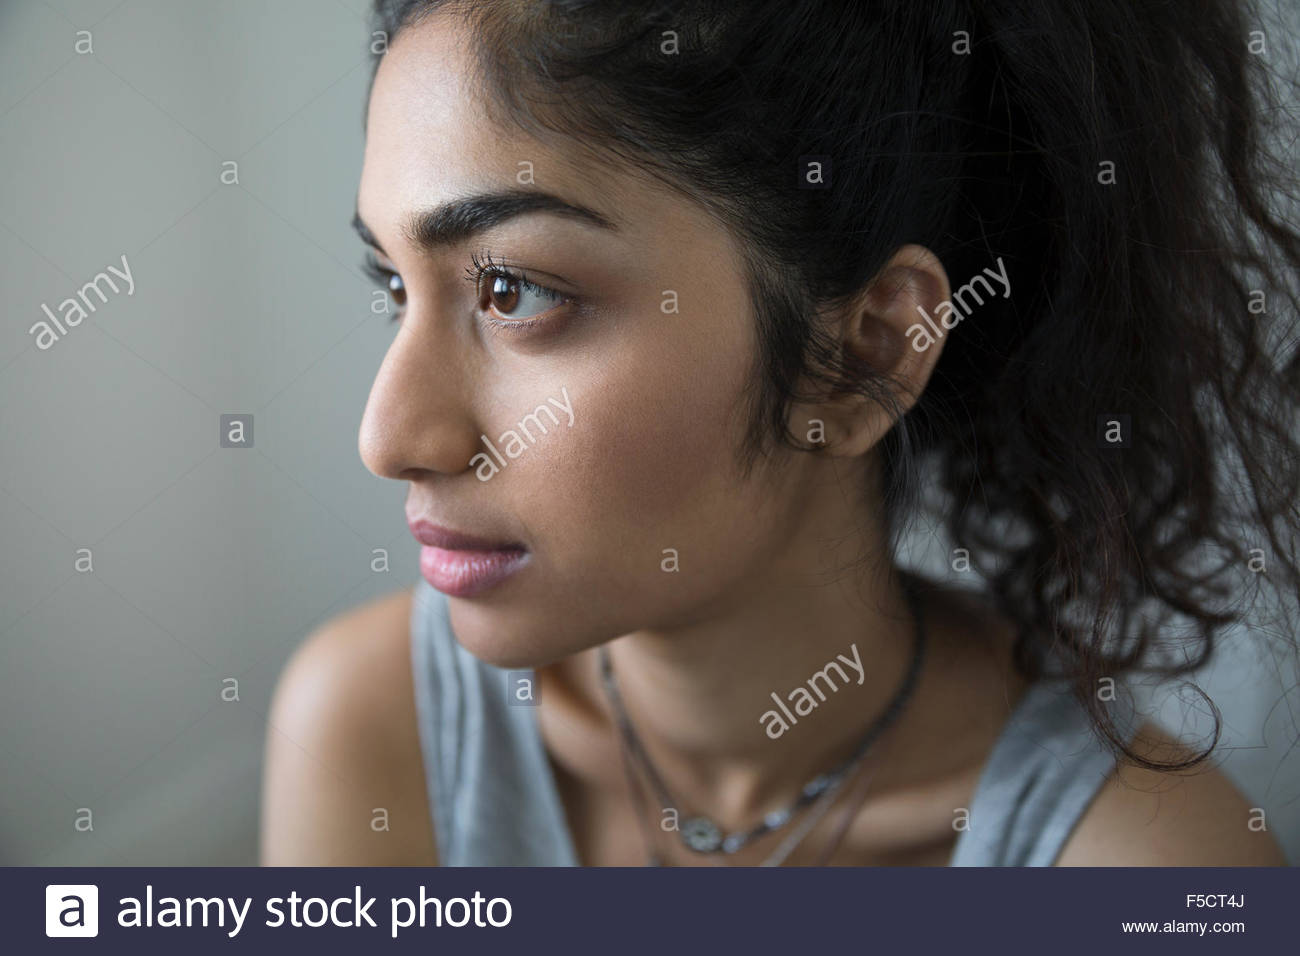 Close up portrait of smiling woman Photo Stock